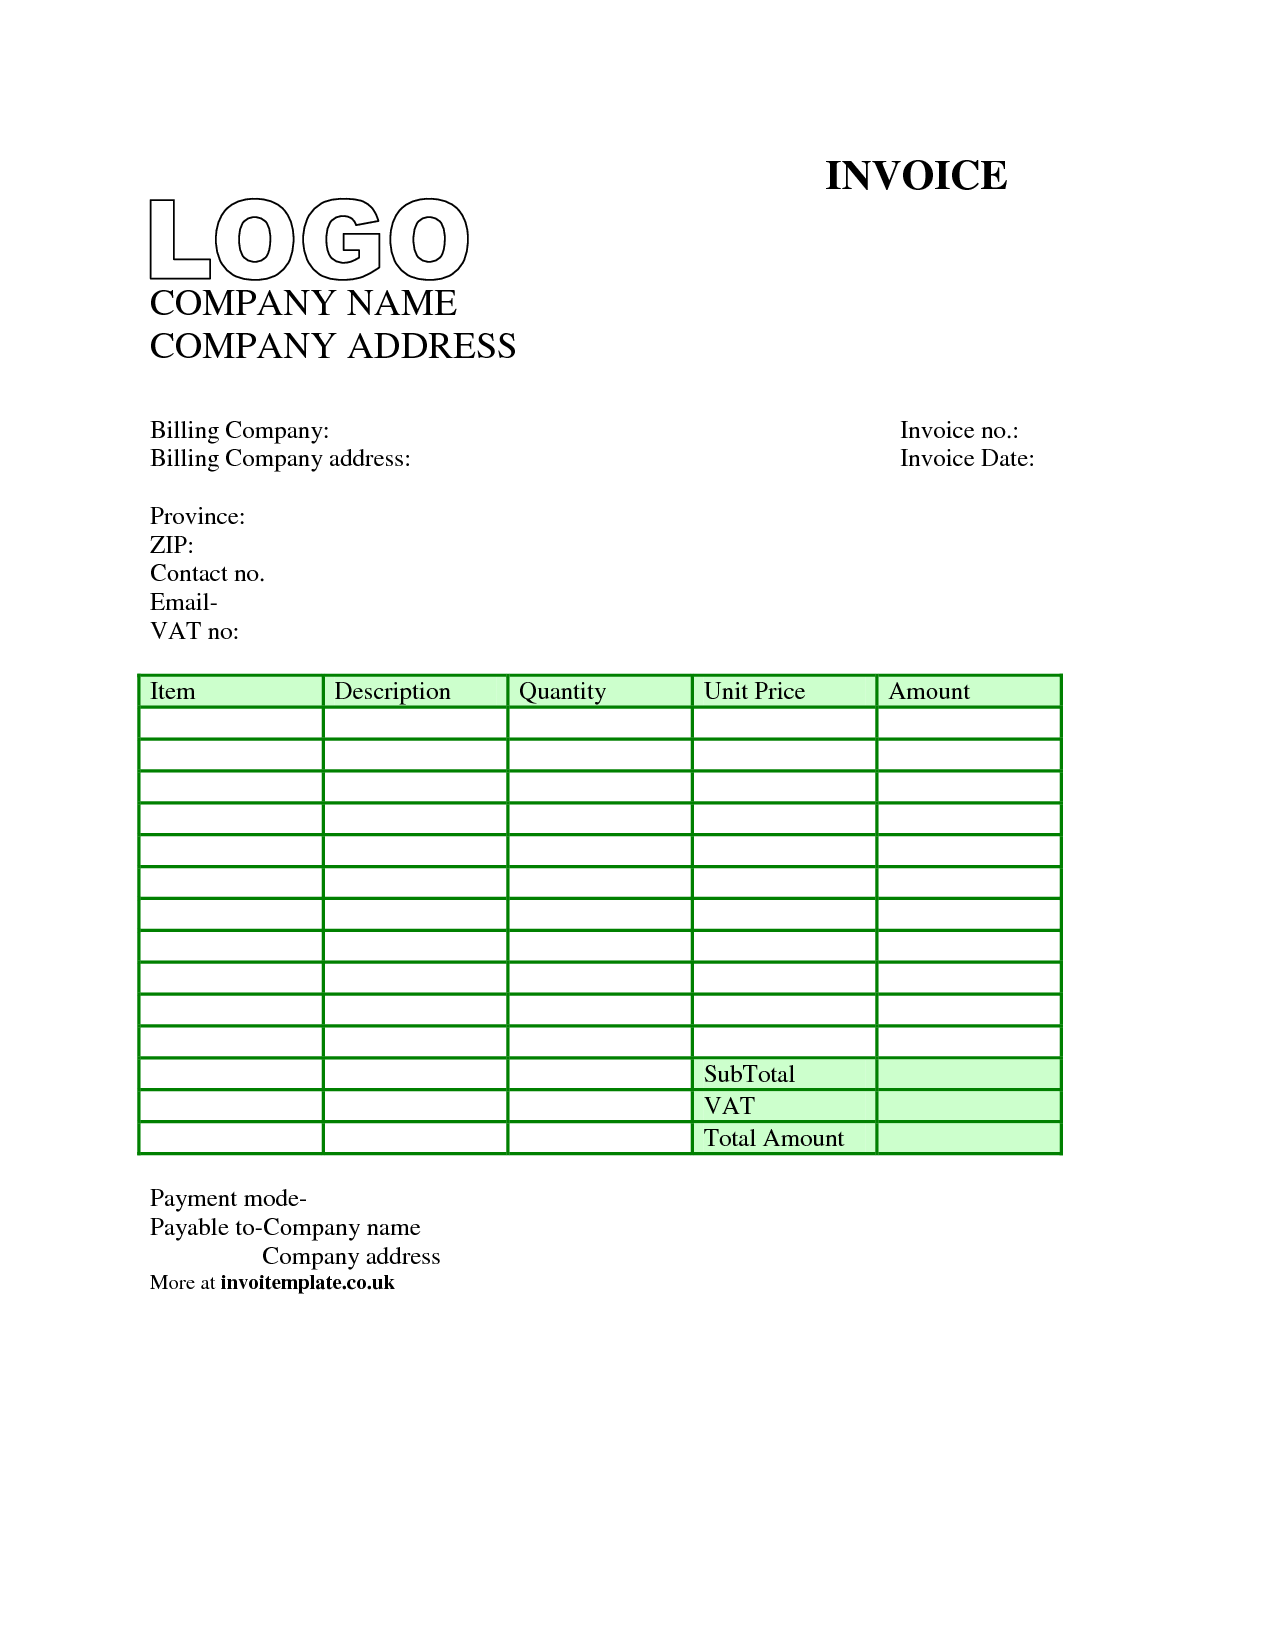 invoice template uk word | invoice example, Invoice examples